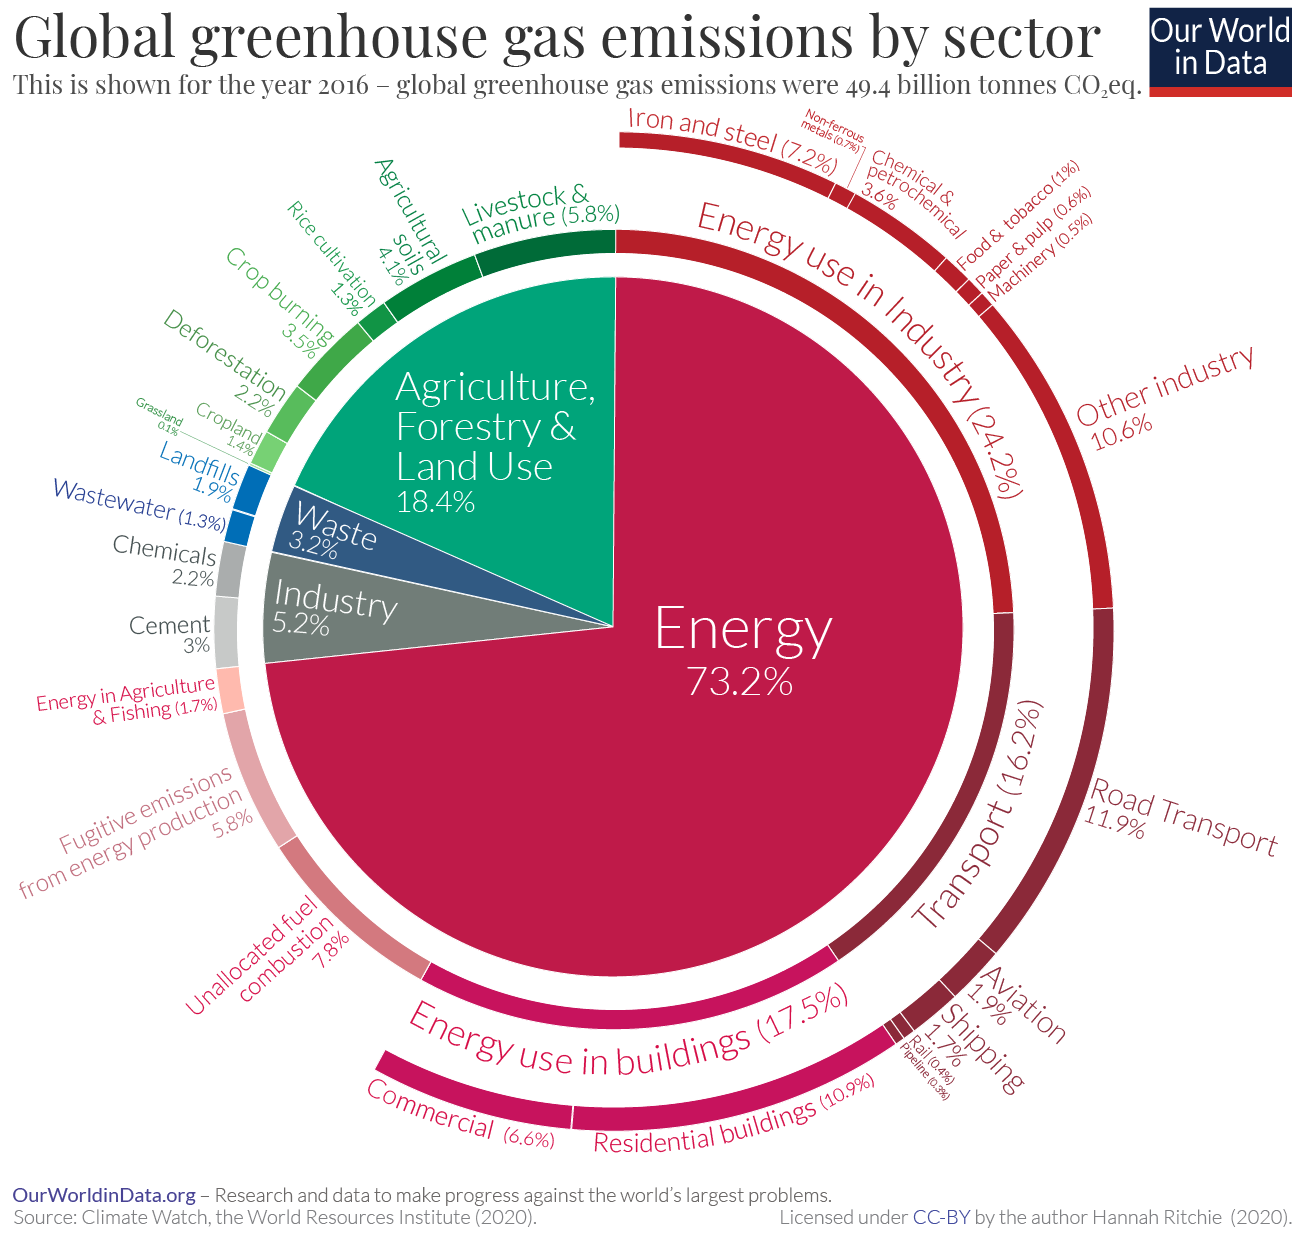 Sector by sector: where do global greenhouse gas emissions come from?